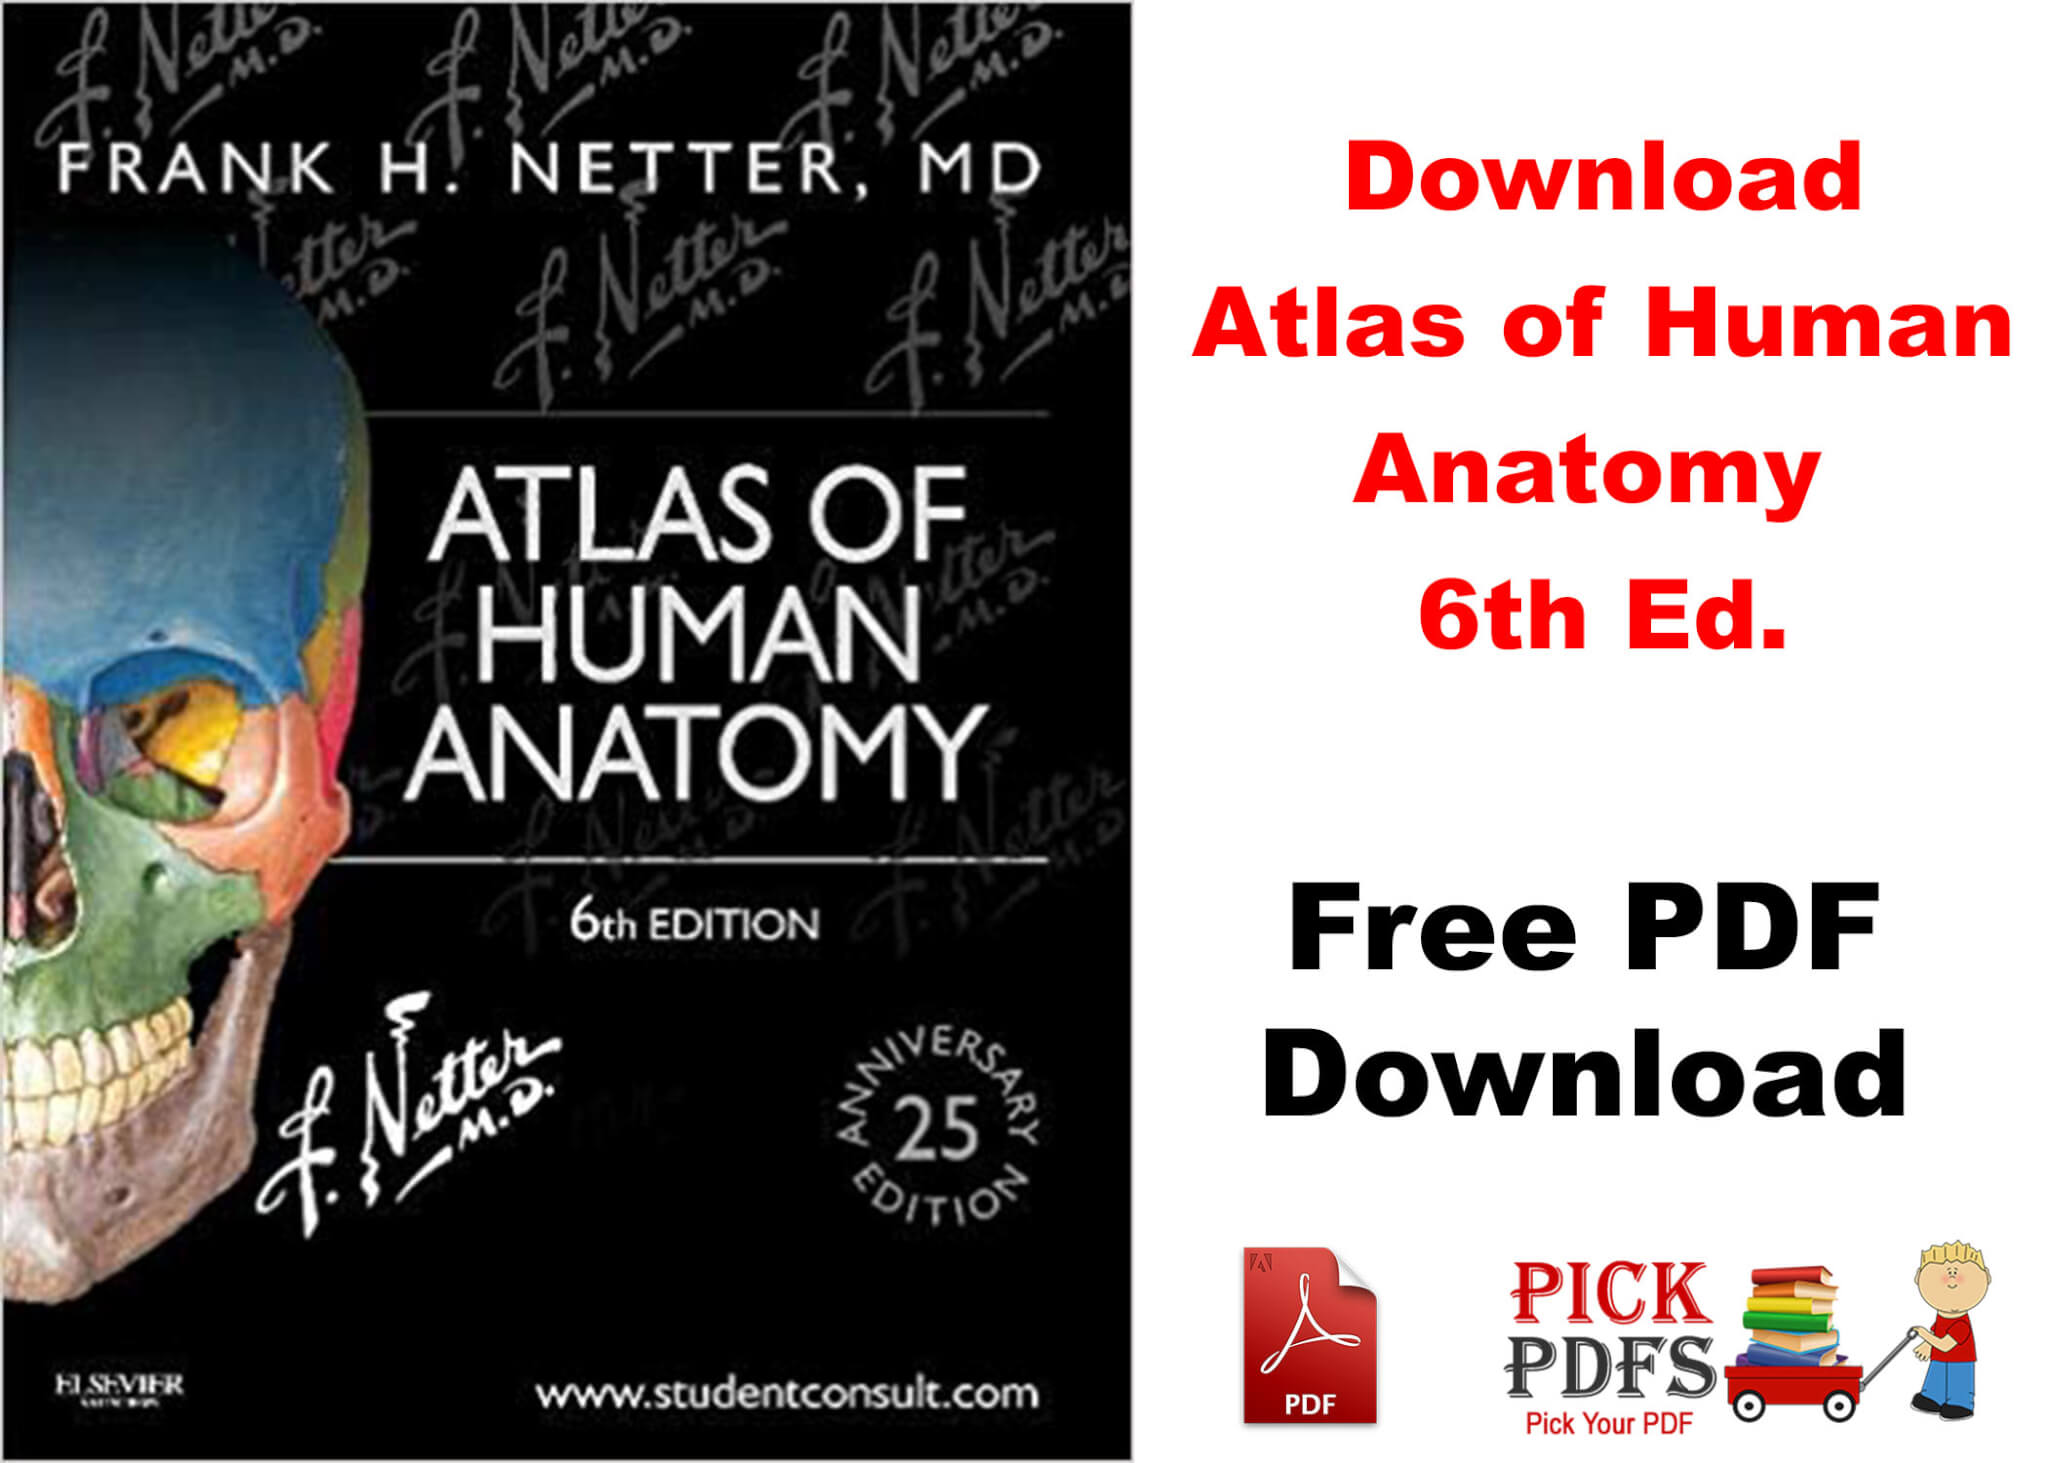 netter atlas of human anatomy 6th pdf free download